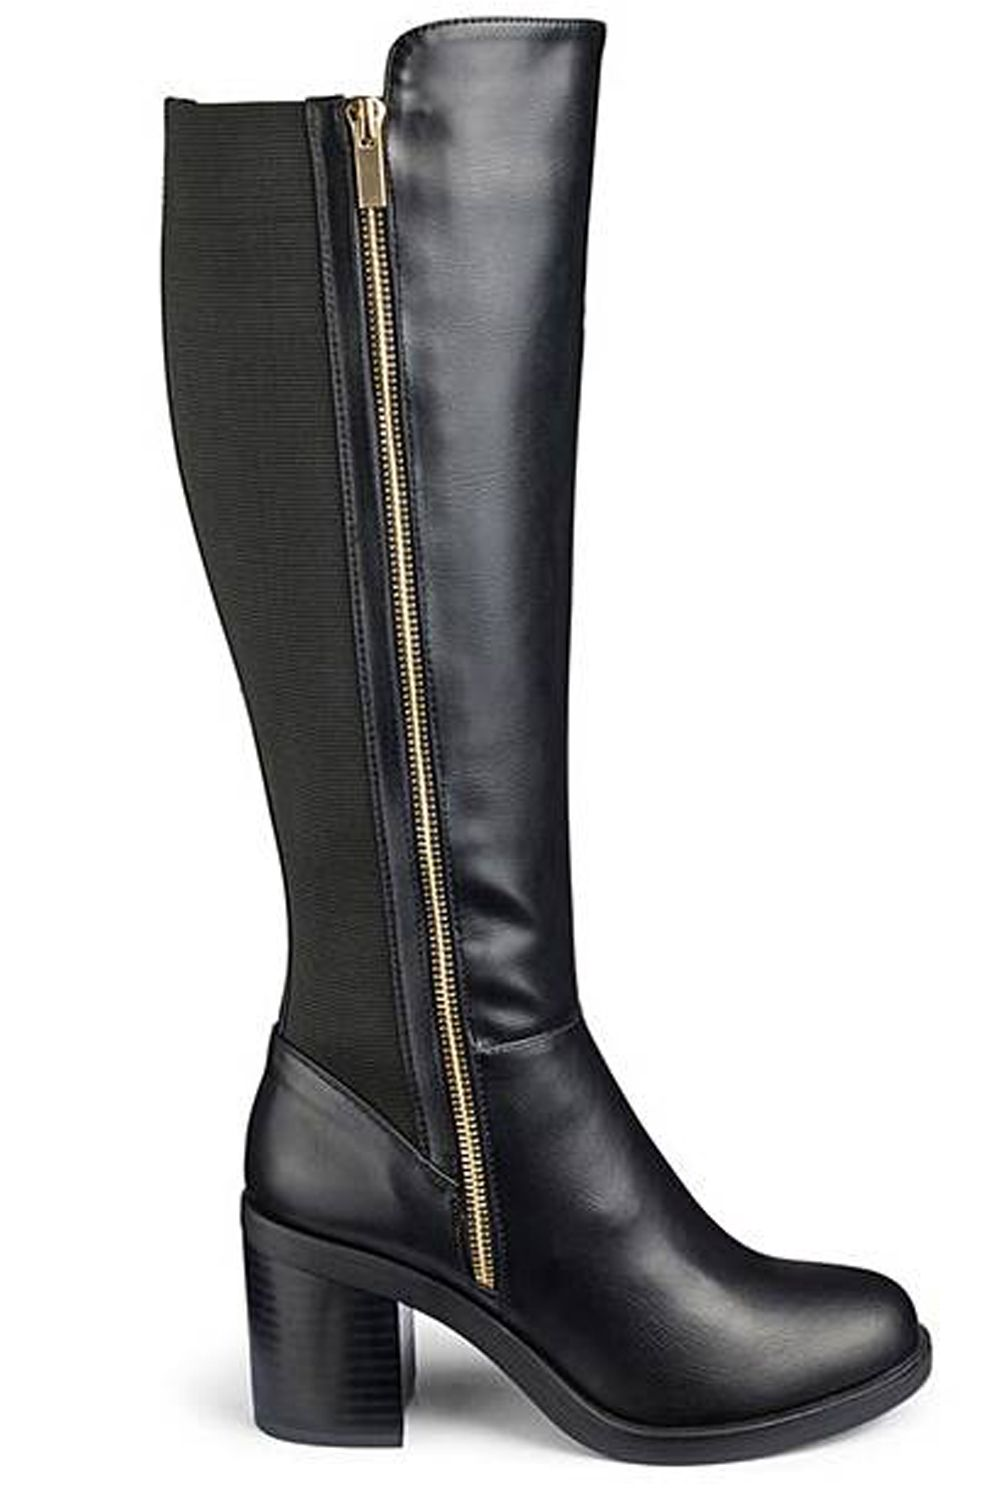 74dbb06850c Wide Calf Boots - 19 of the Best Wide Fit Boots for Spring Summer 2019